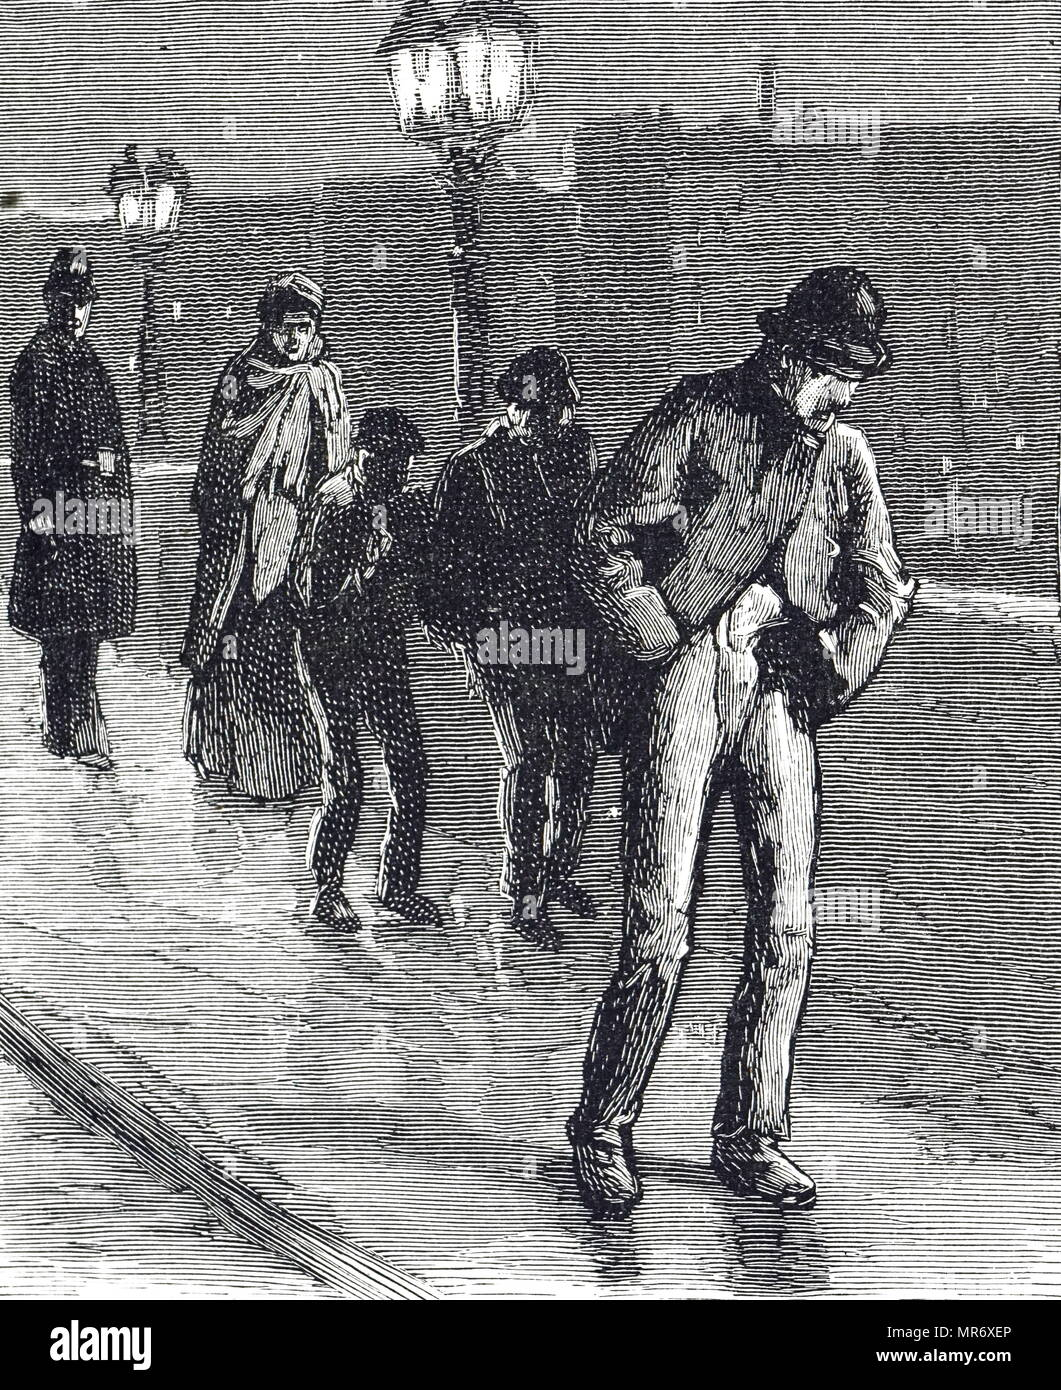 Engraving depicting homeless Londoners being 'moved on' by police on Westminster Bridge. Dated 19th century - Stock Image